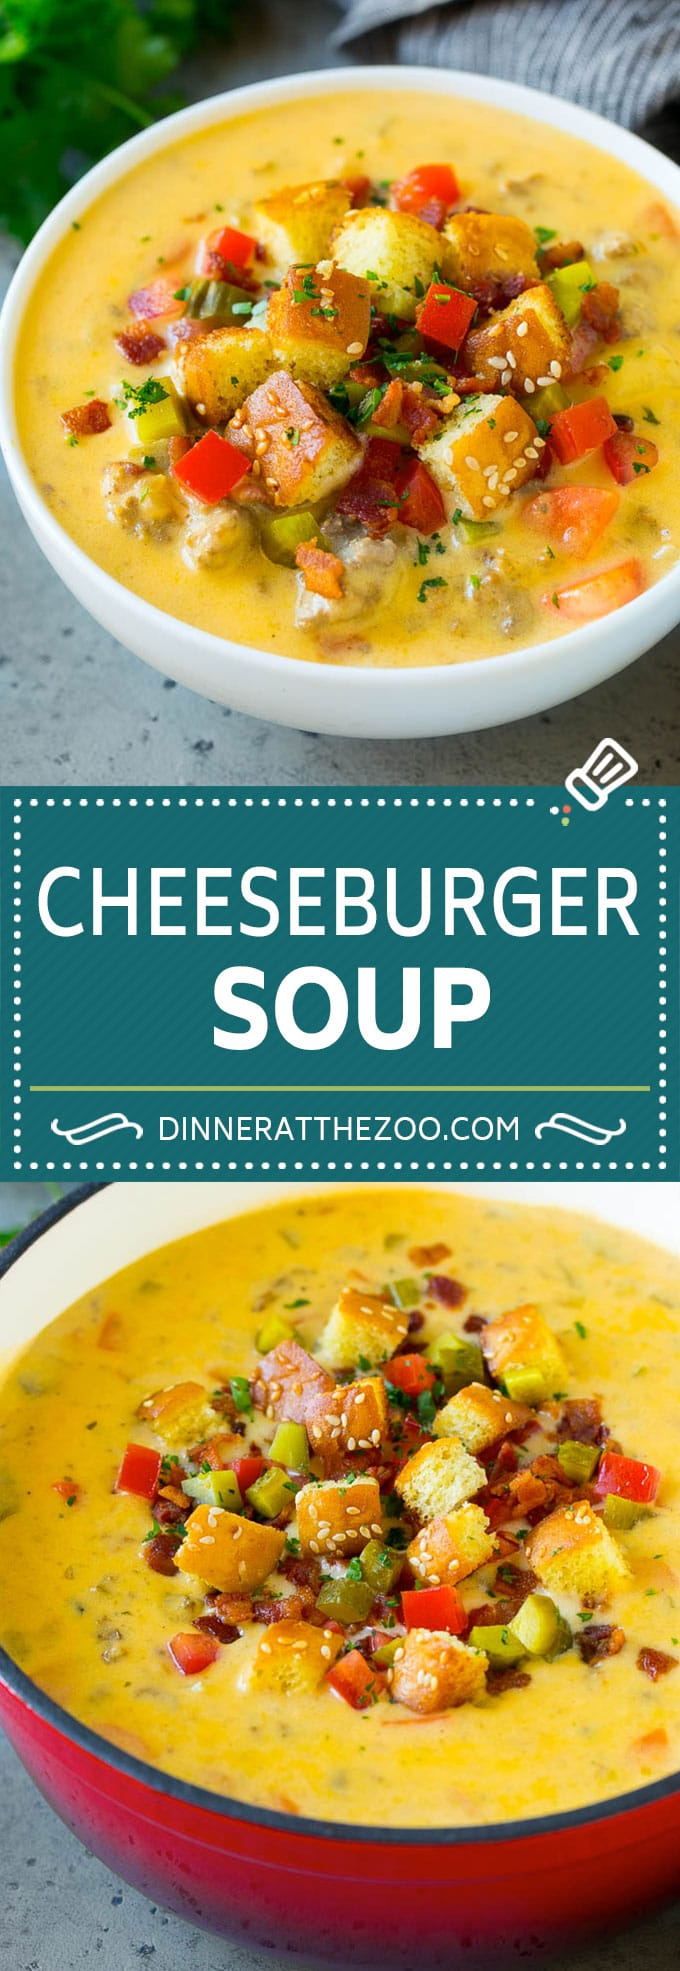 Cheeseburger Soup Recipe | Hamburger Soup | Cheese Soup #soup #groundbeef #hamburger #cheese #bacon #dinner #dinneratthezoo